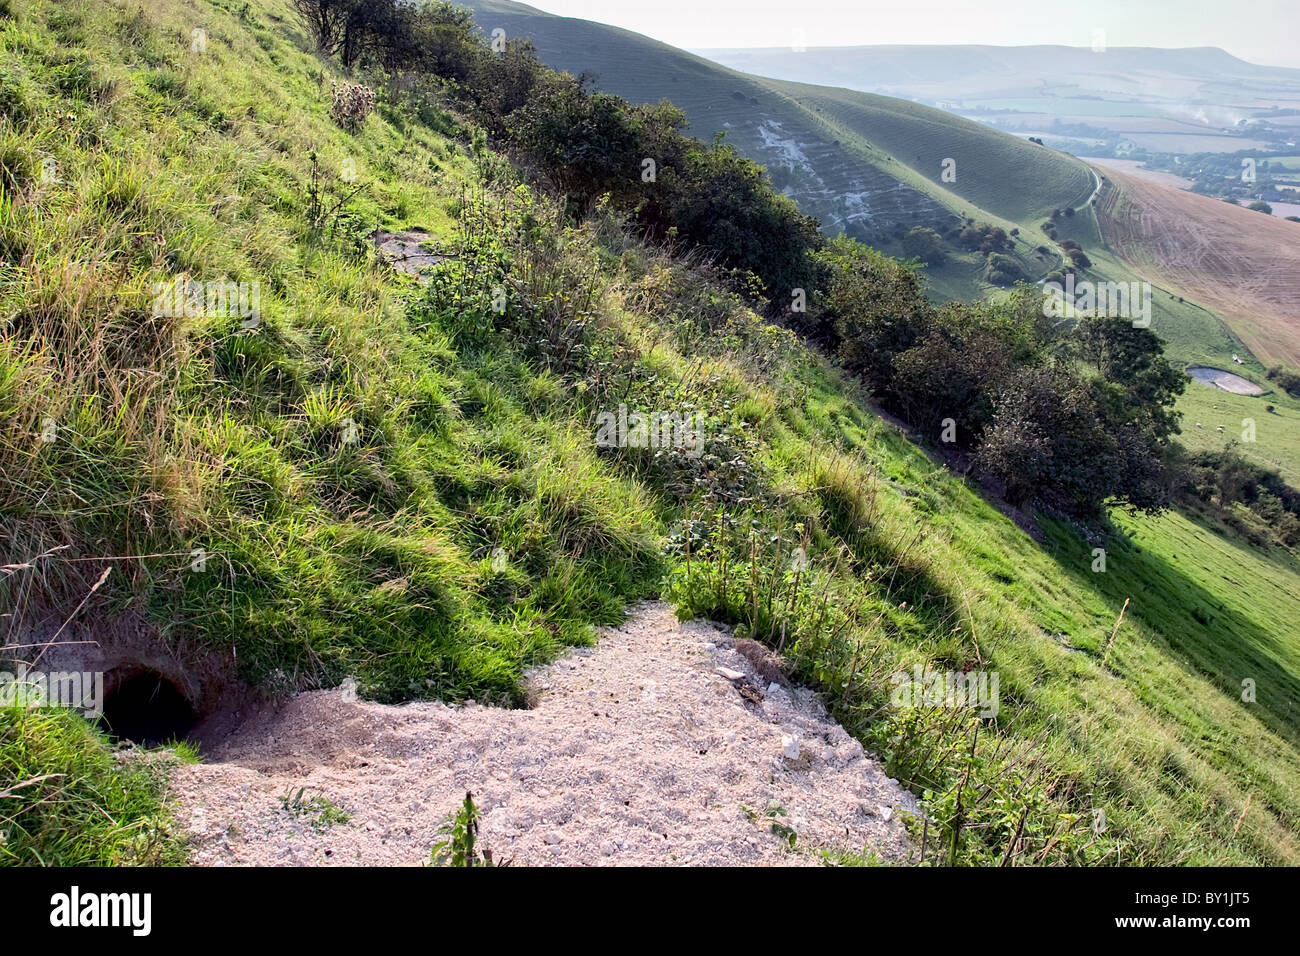 Rabbit warren on the South Downs near Wilmington Long Man looking towards Firle Beacon - Stock Image